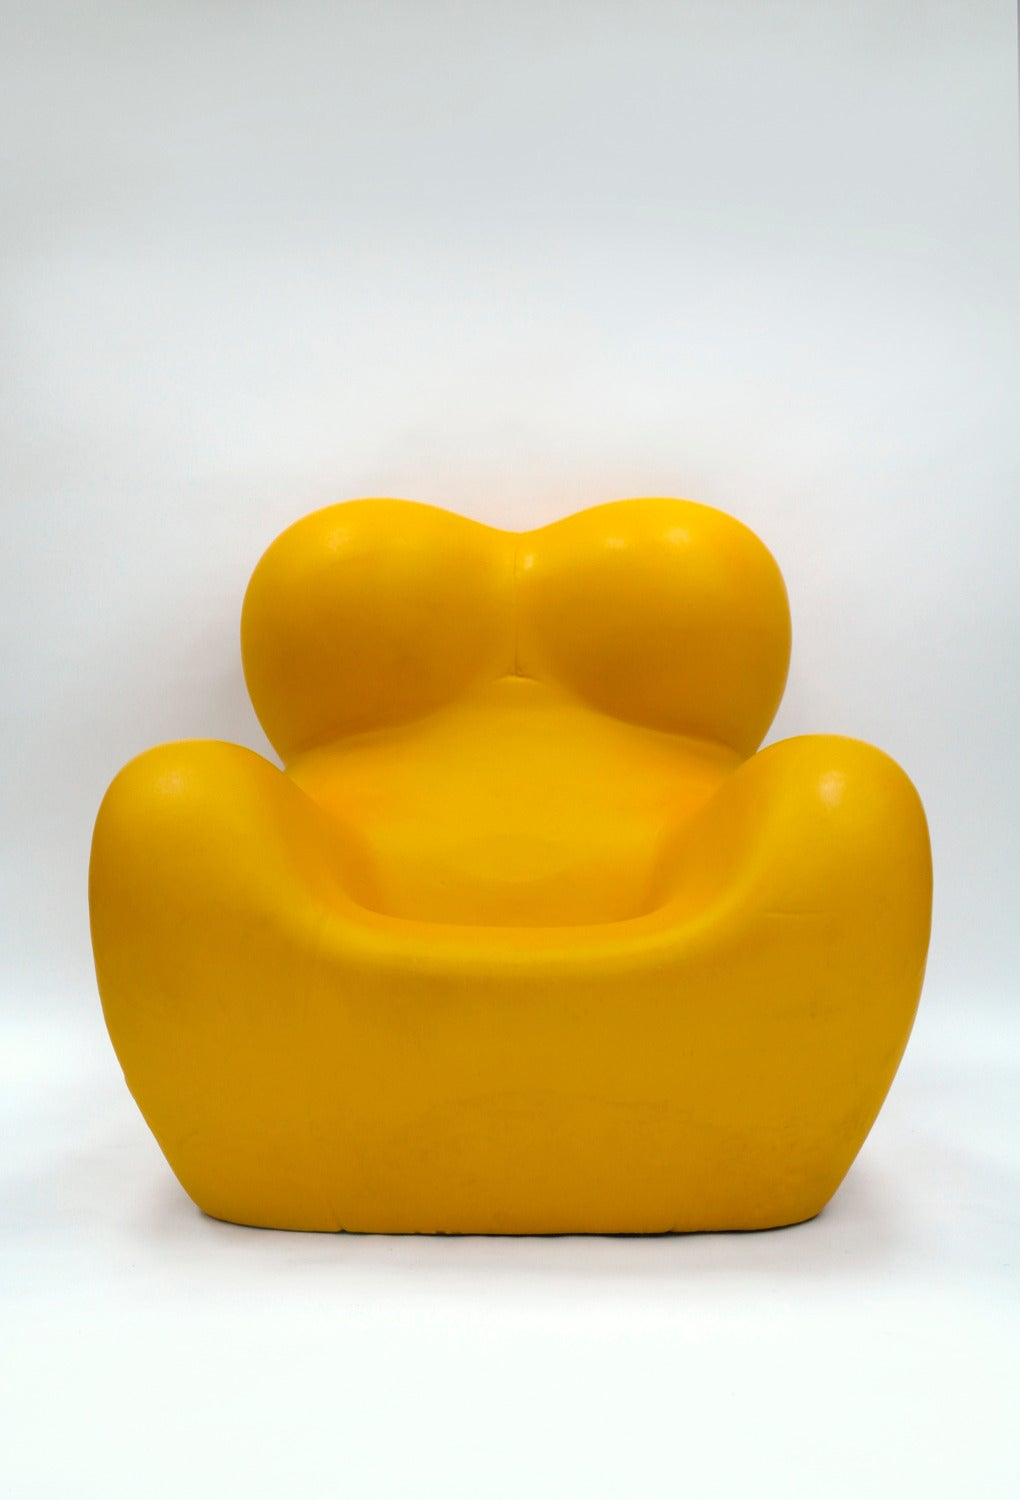 Italian Rare Yellow UP5 6 'Up' Armchair and Ottoman by Gaetano Pesce for B B Italia For Sale